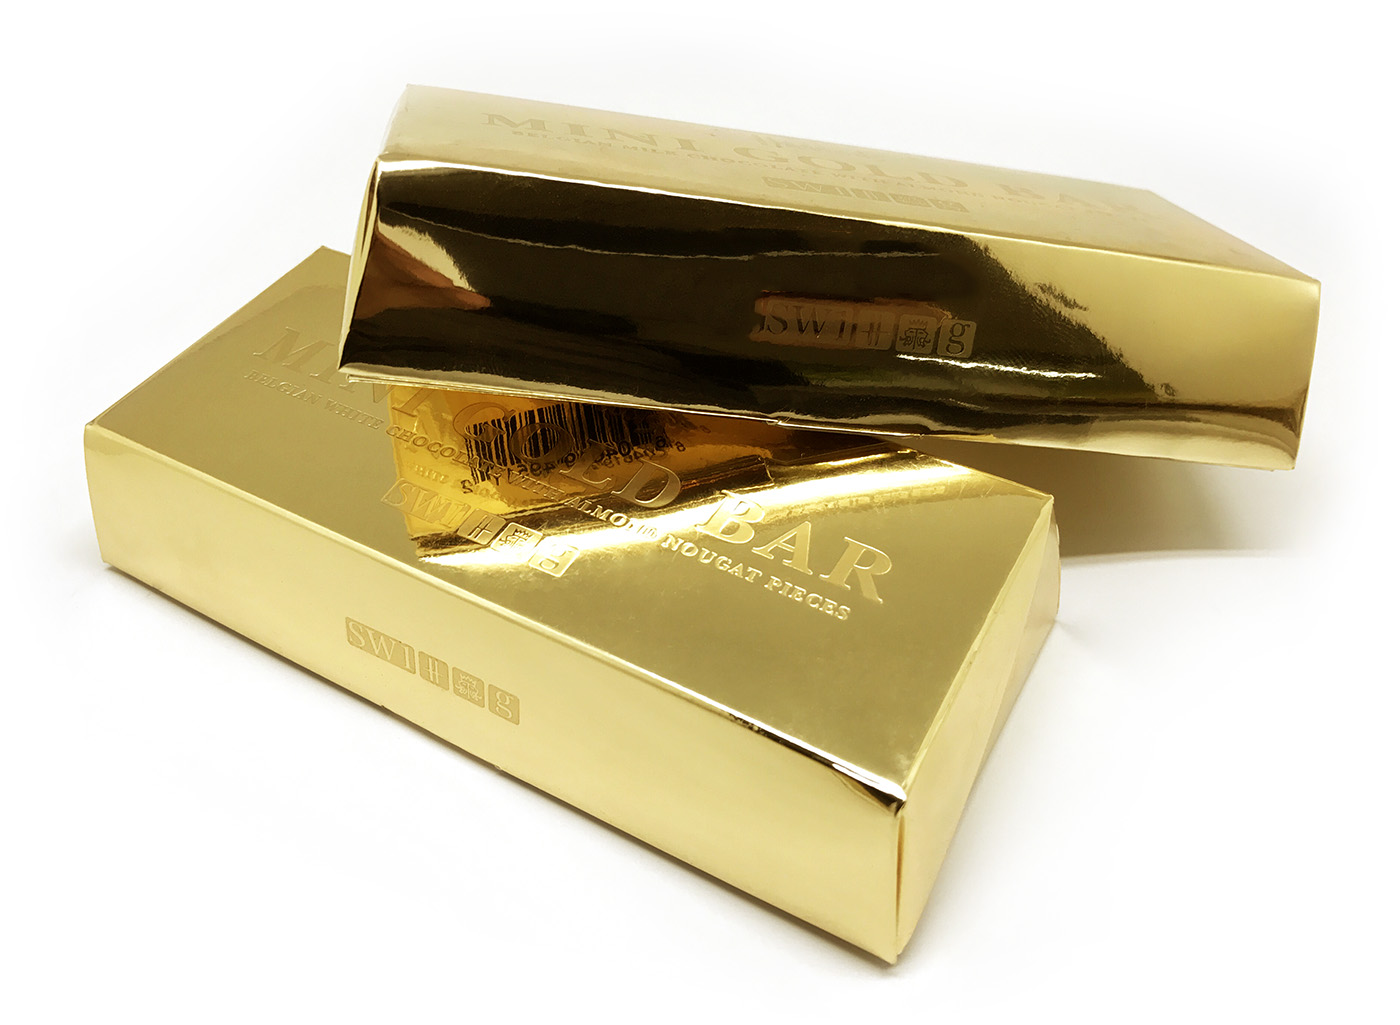 Harrods Gold Bar chocolate packaging